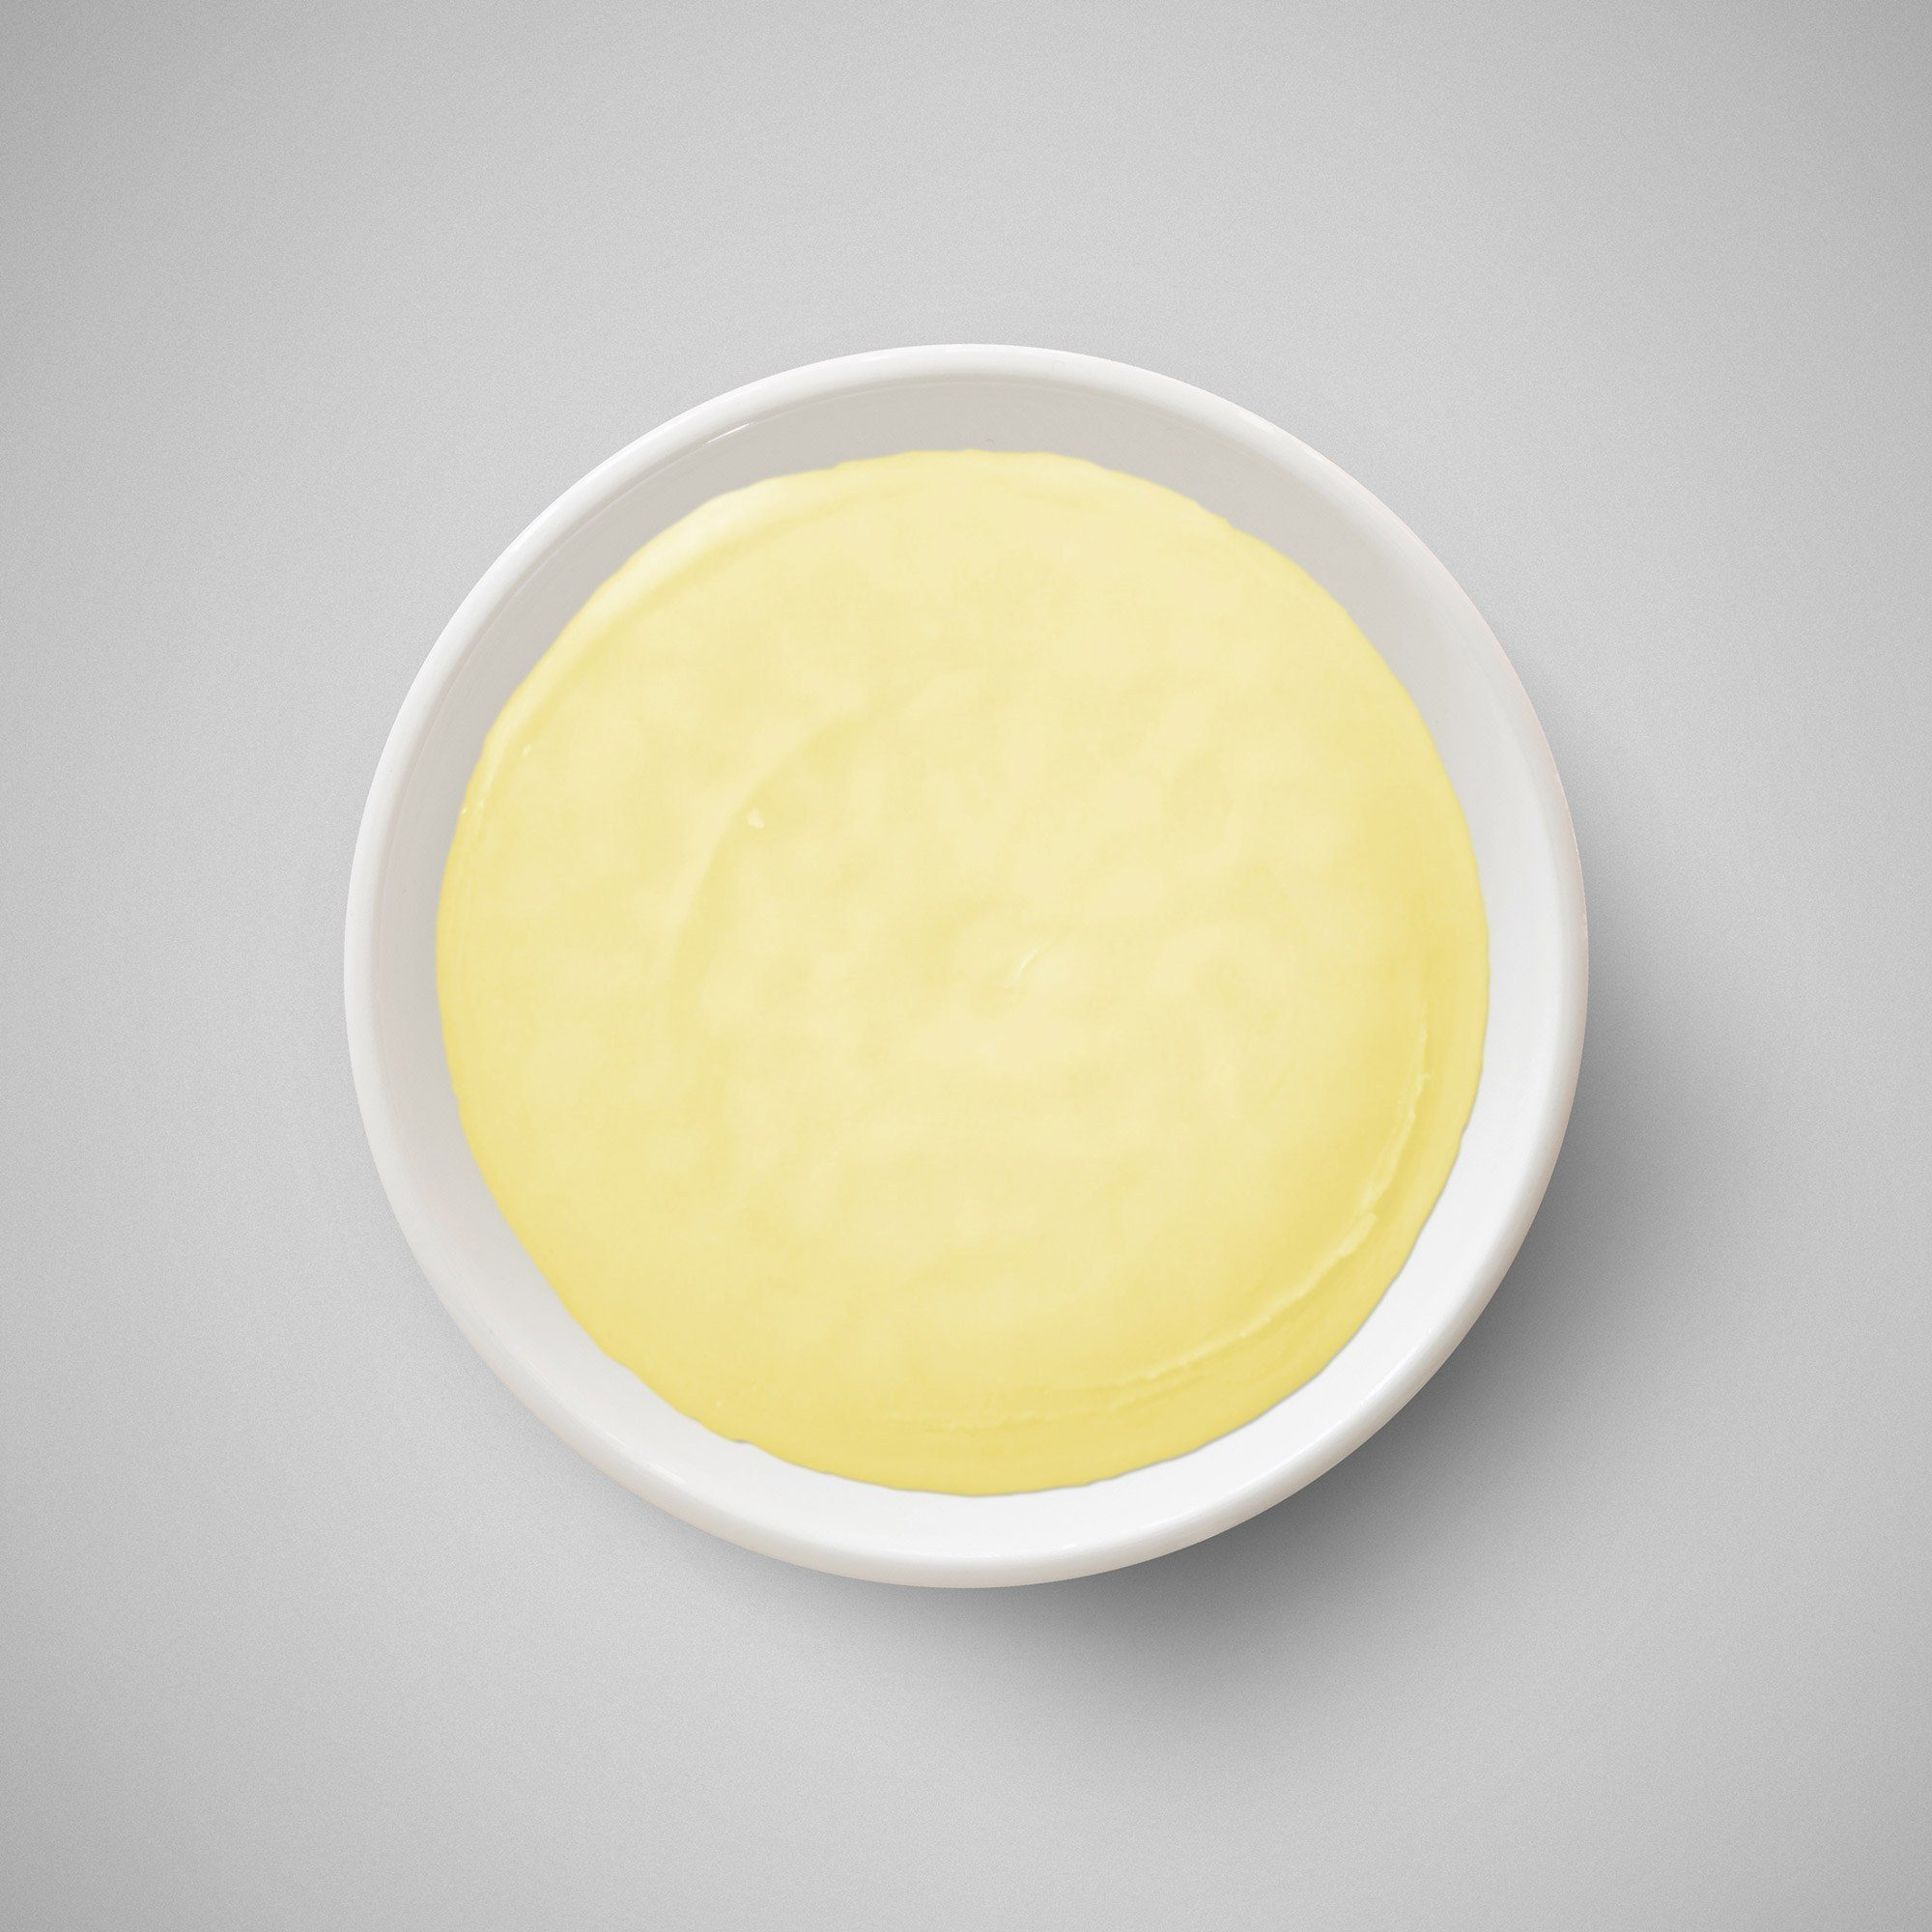 Yellowish creamy substance for making lipstick in a small bowl against a grey background.